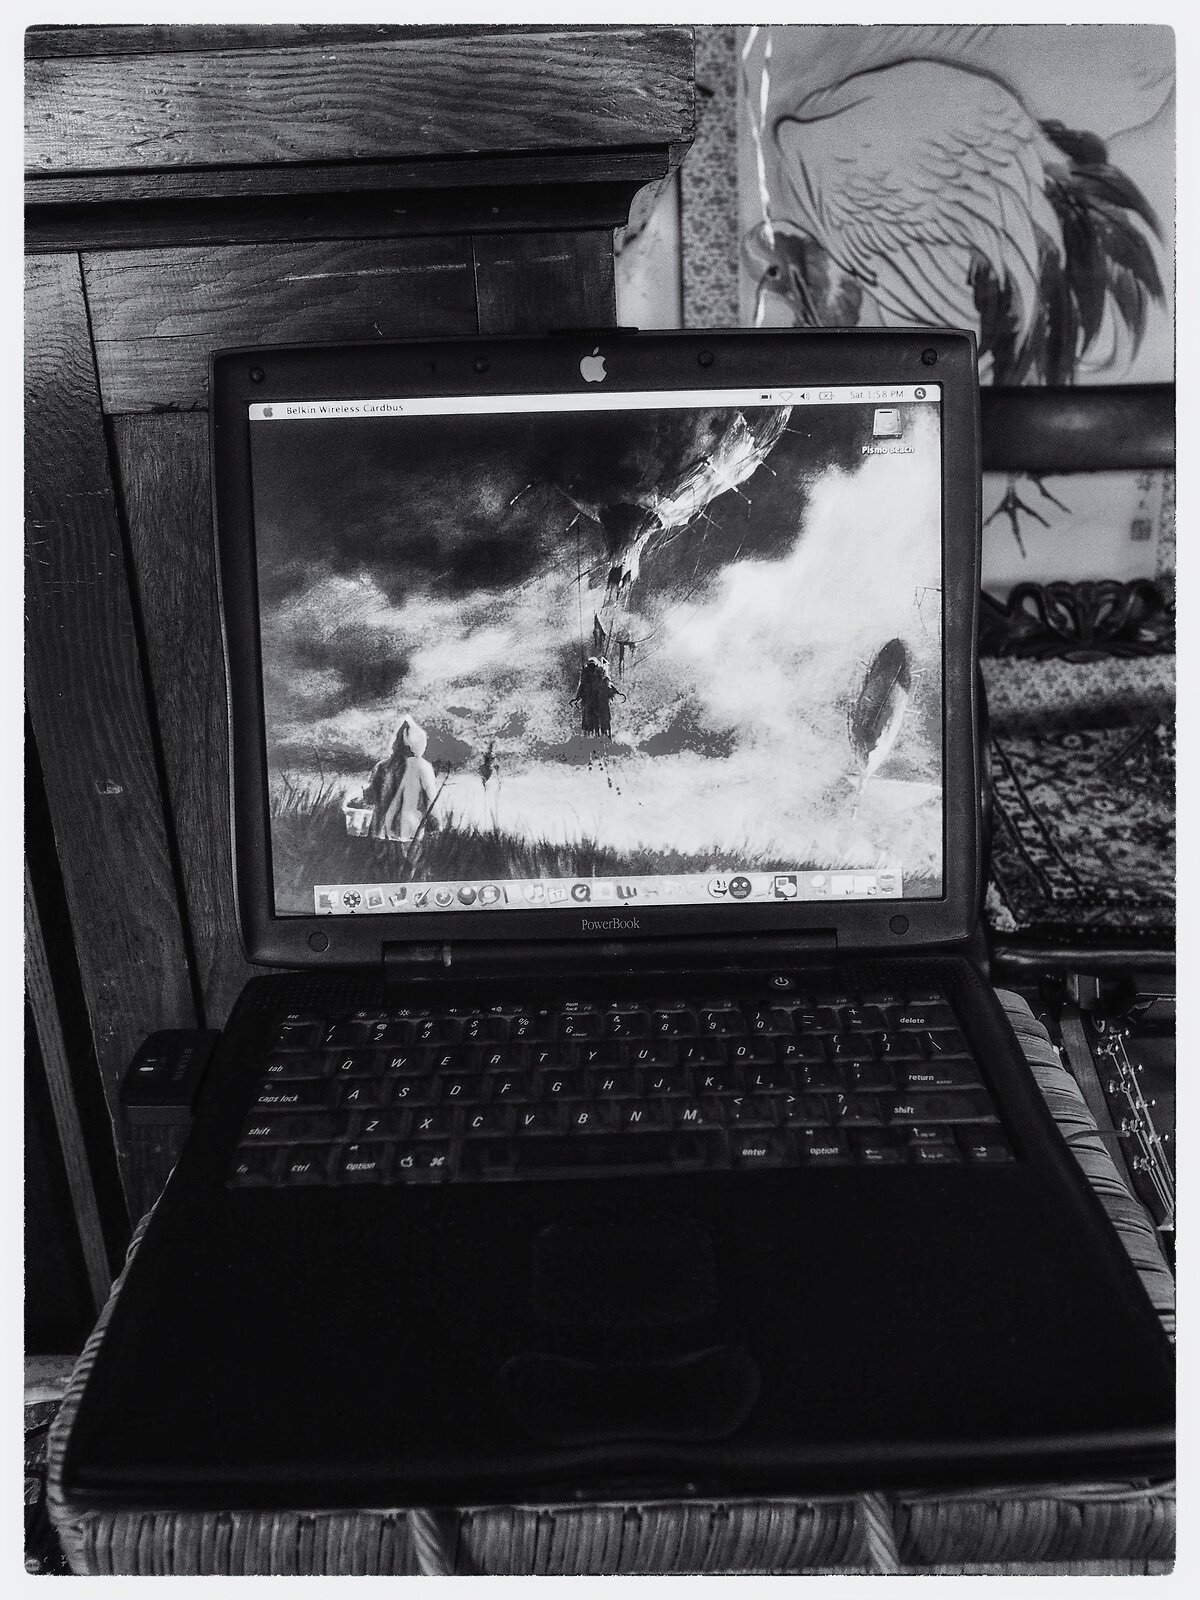 PenF_Jan17_21_Pismo_Powerbook(mono).jpg